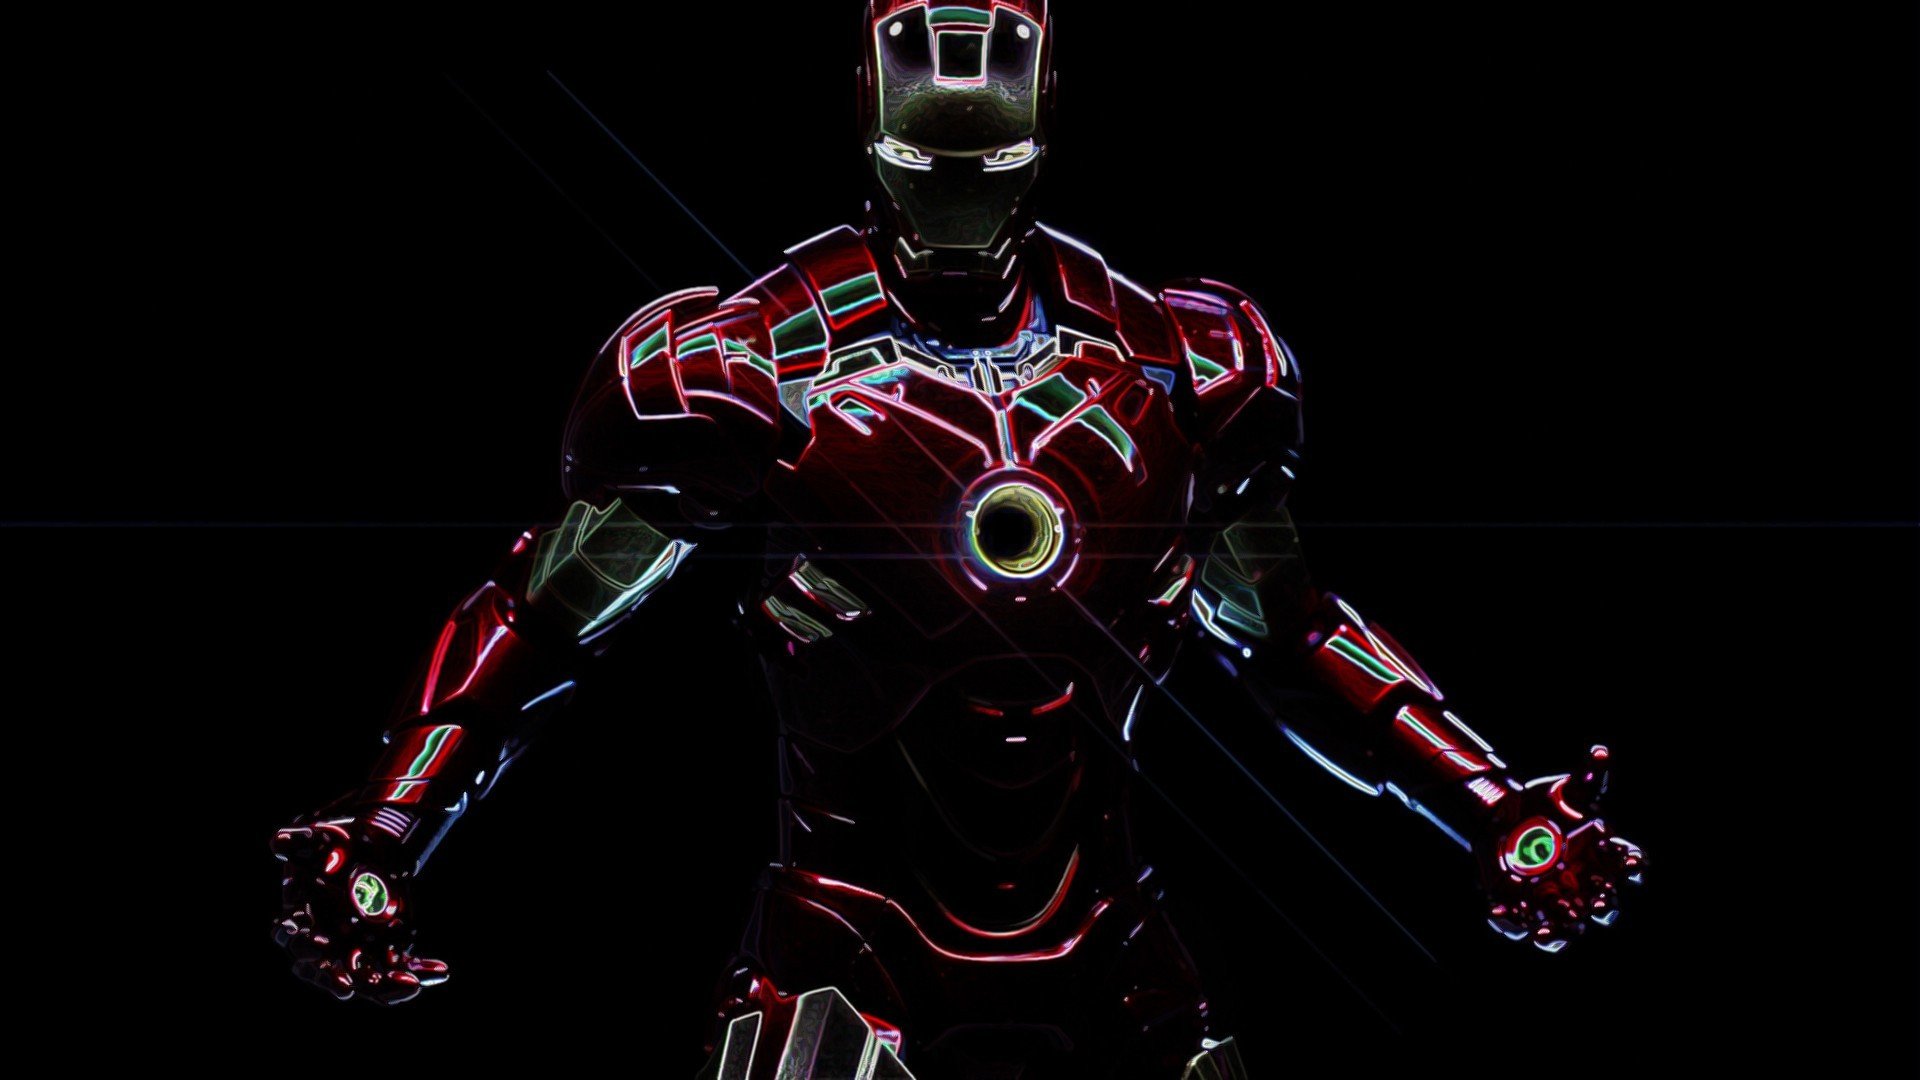 … Attachment for HD Wallpapers 1080p with Superheroes – Iron Man (7 of  23) …